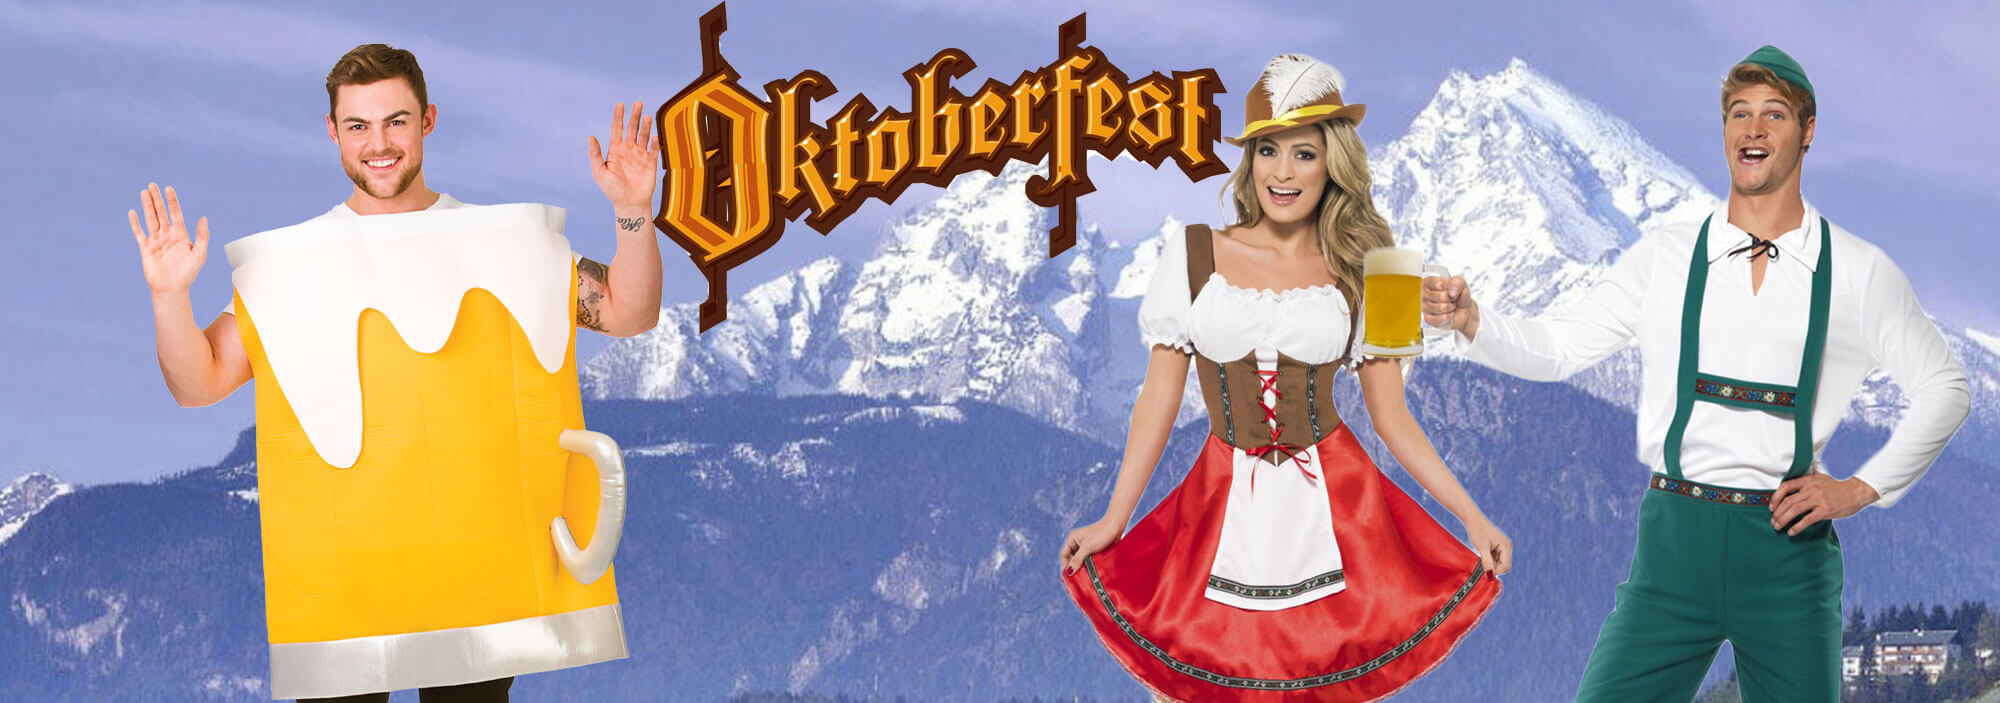 Oktoberfest, BeerFest, Octoberfest Fancy Dress